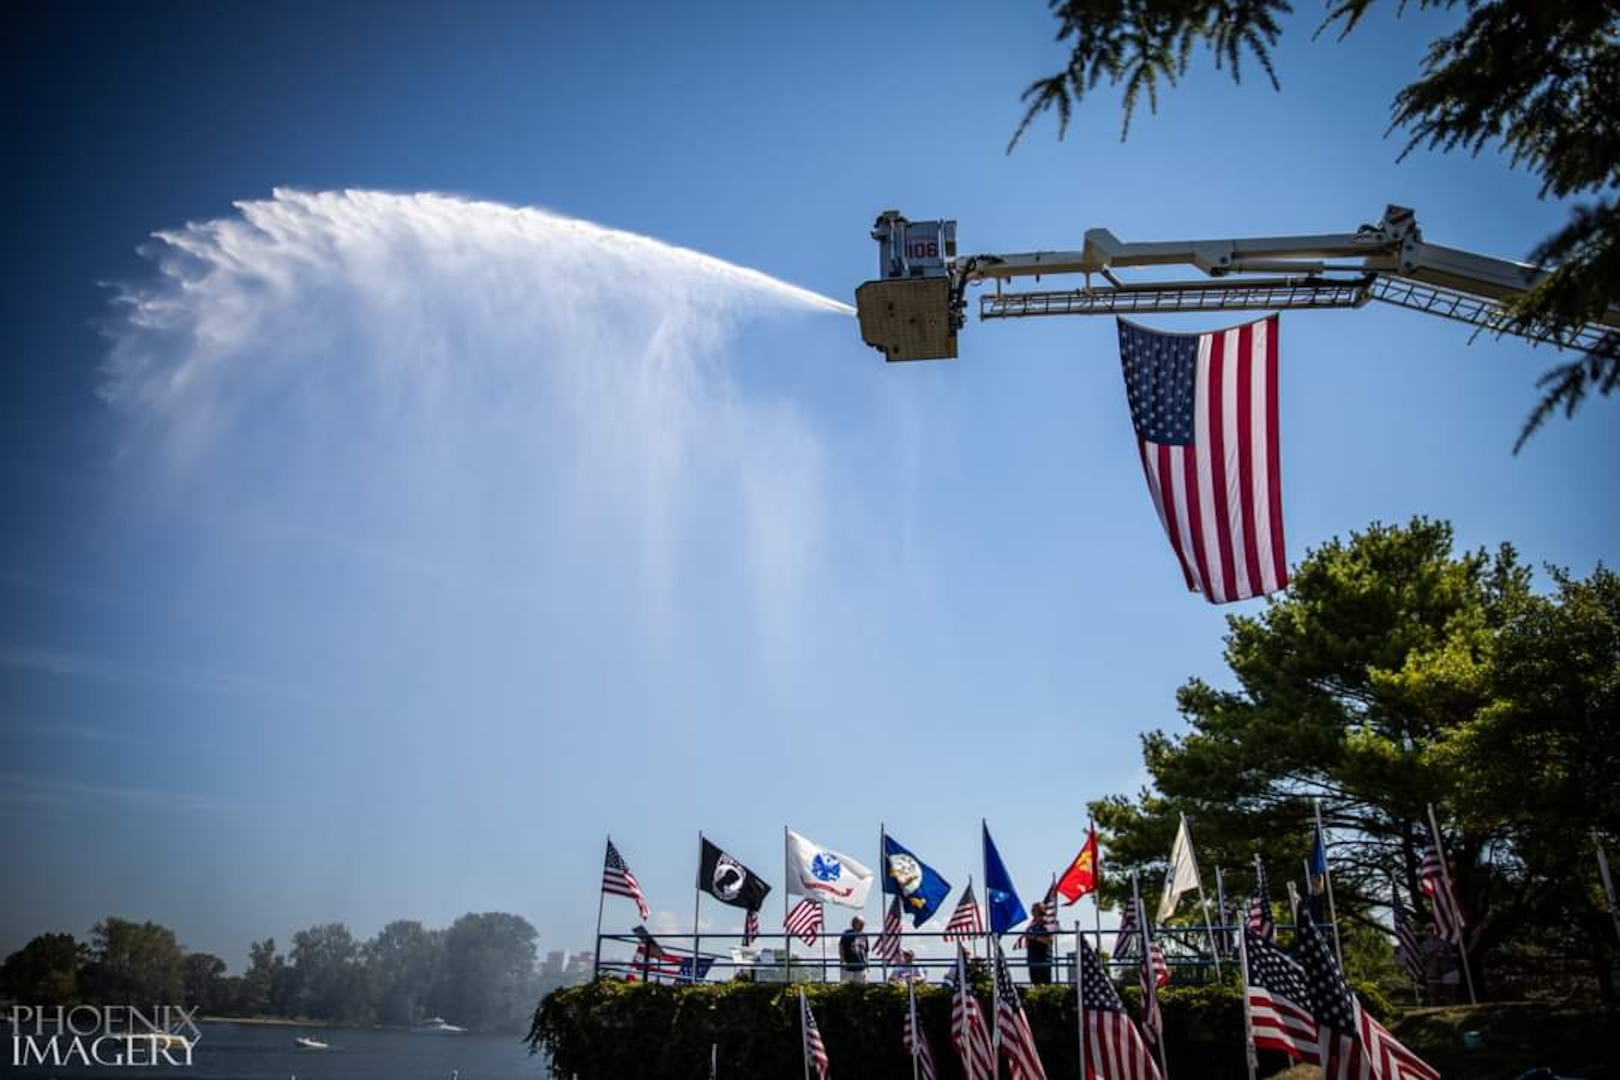 Firetruck spraying water over a lake with flags displayed on an overlook.